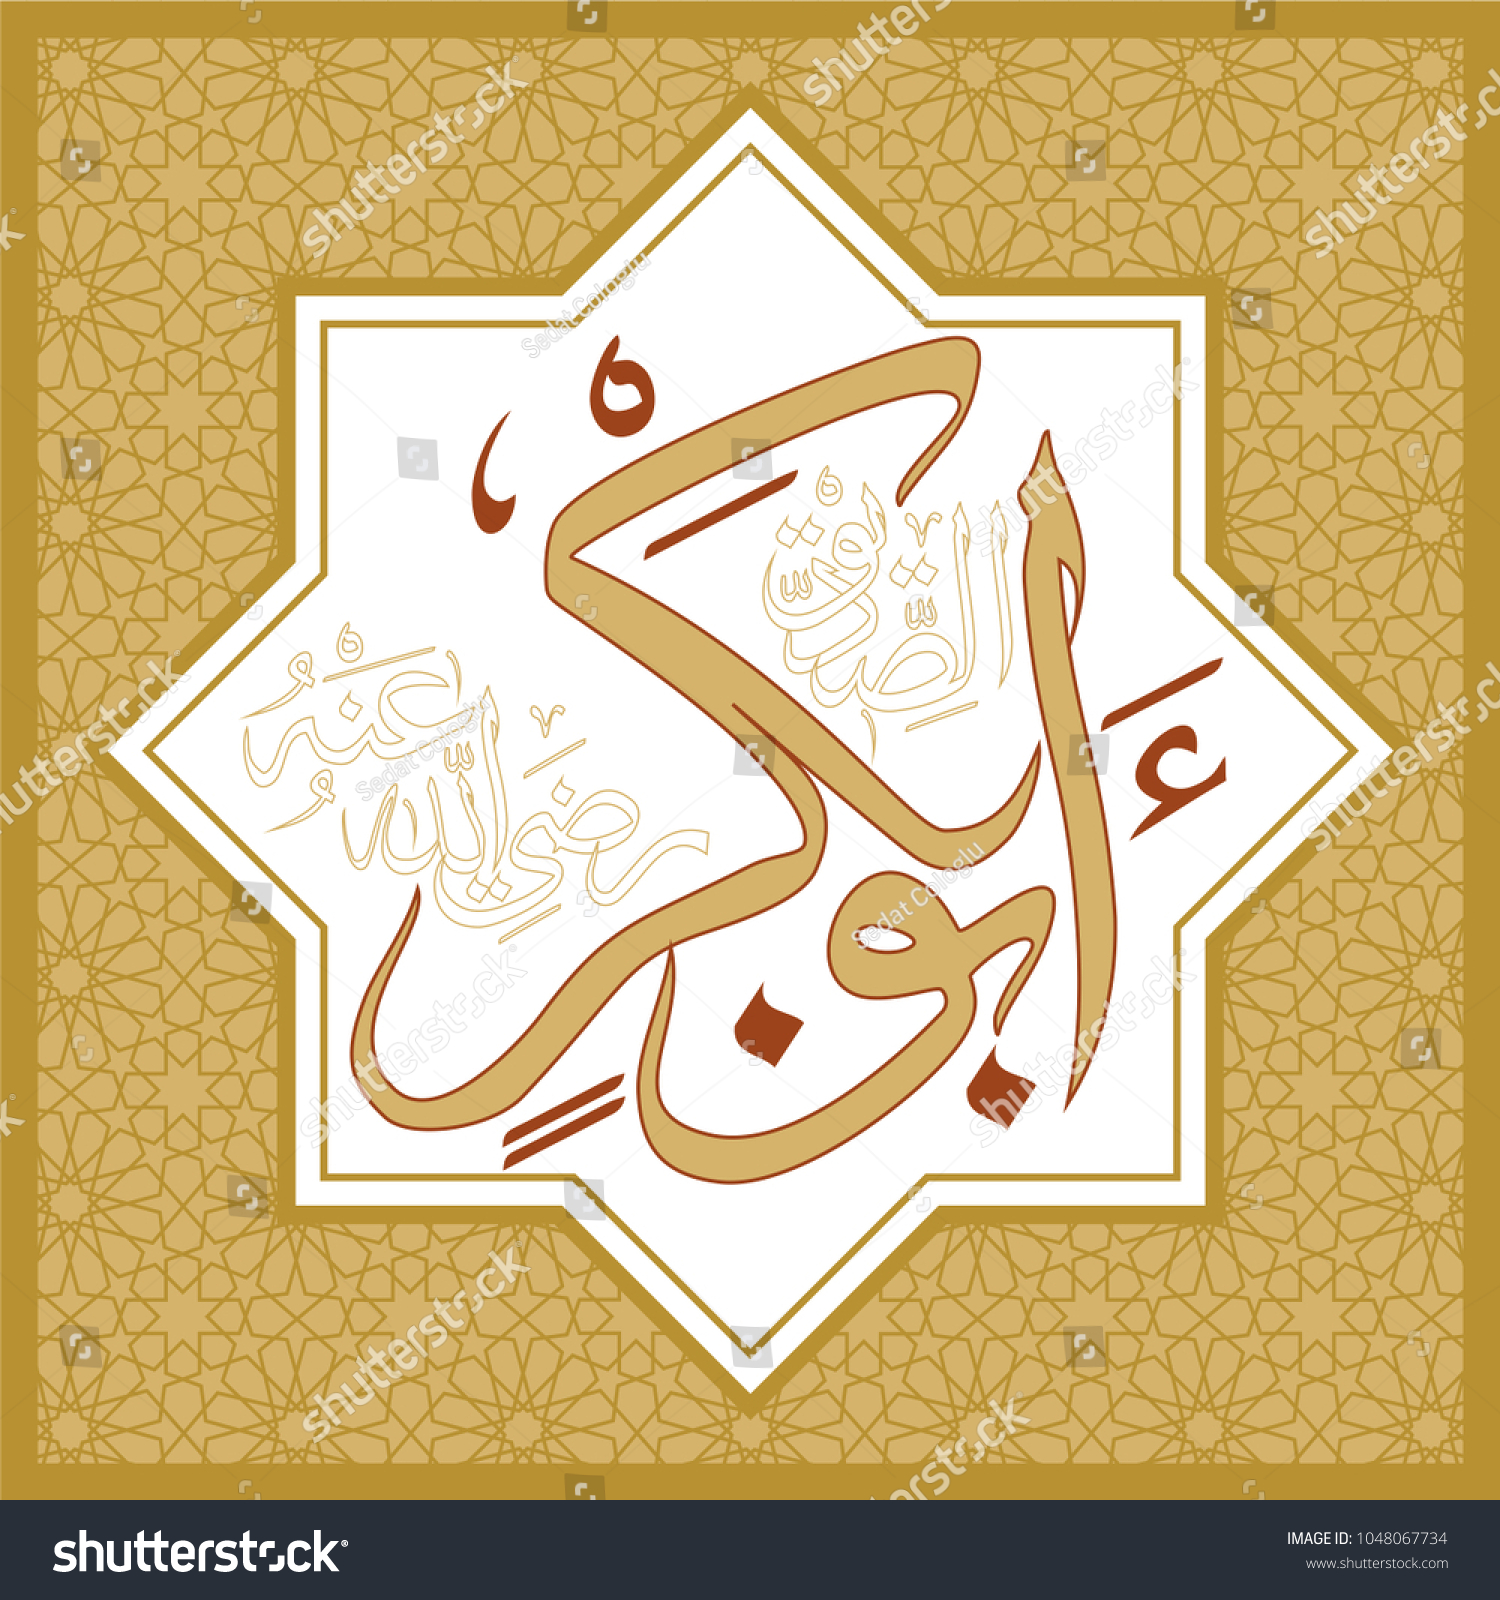 Excellent Islamic Wall Decoration Images - The Wall Art ...